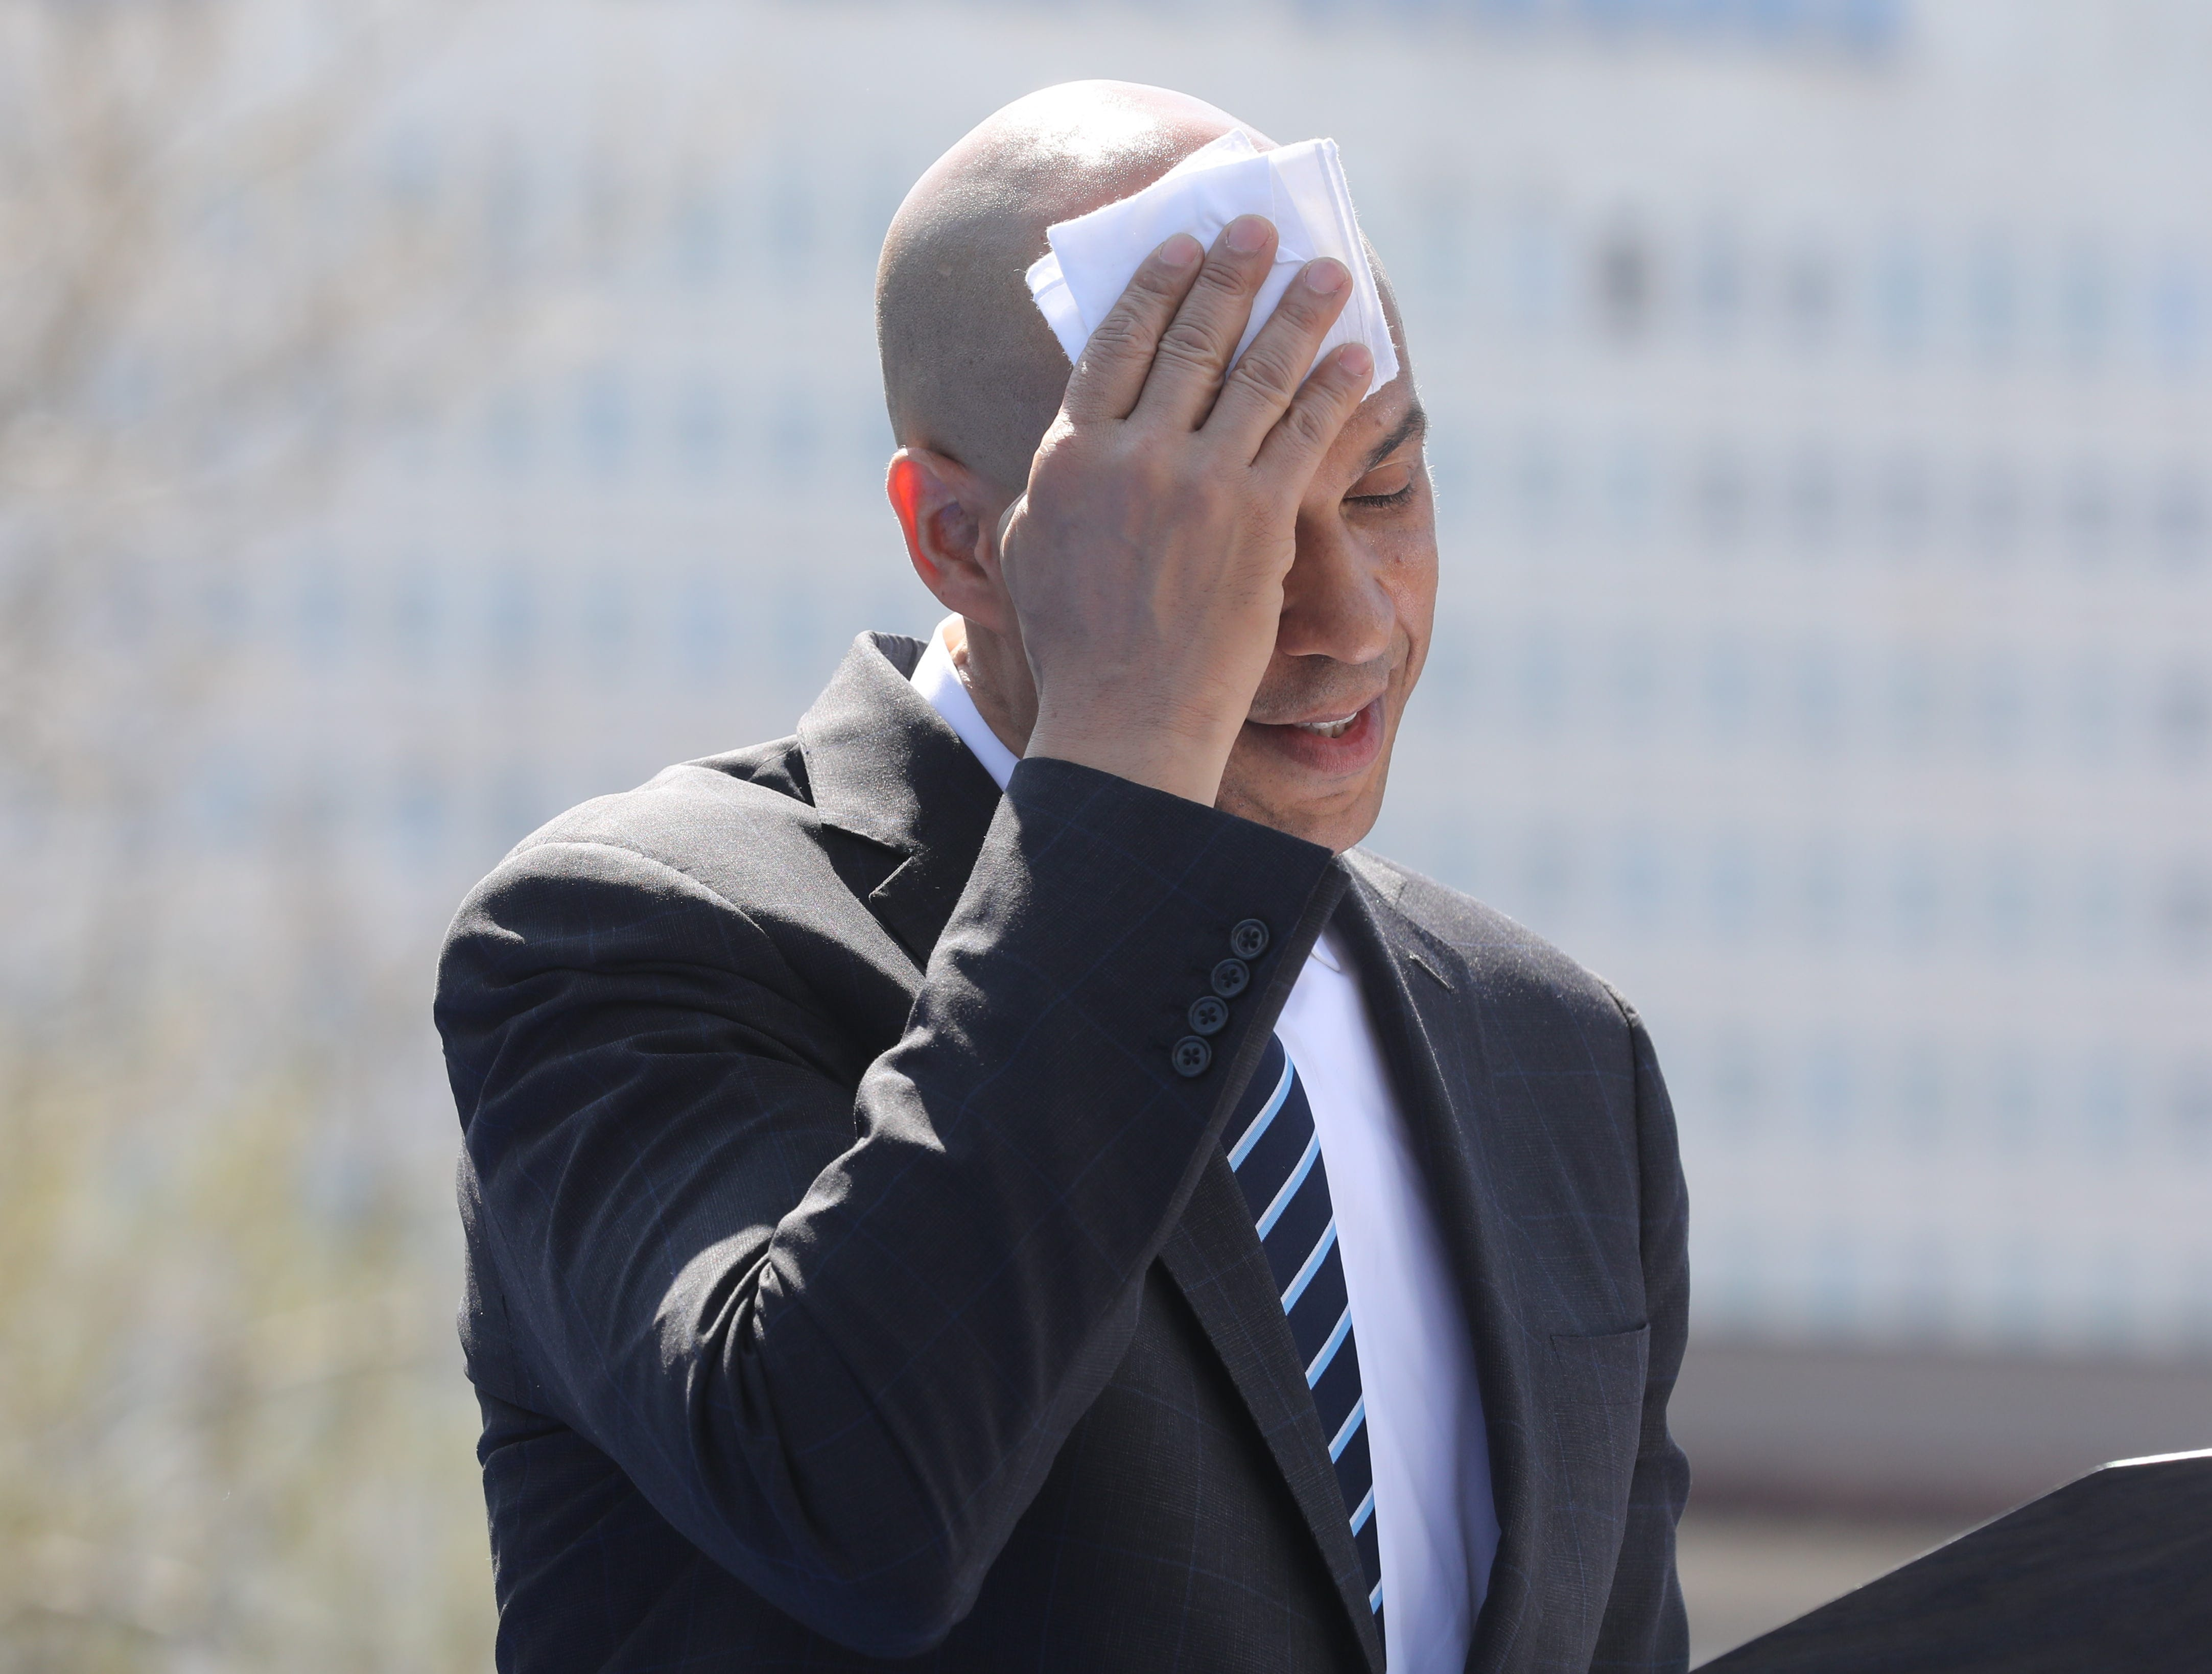 Senator Cory Booker wipes his forehead as he addresses supporters at a rally to kick off the Cory Booker campaign for president that was held at Military Park in Newark on April 13, 2019.